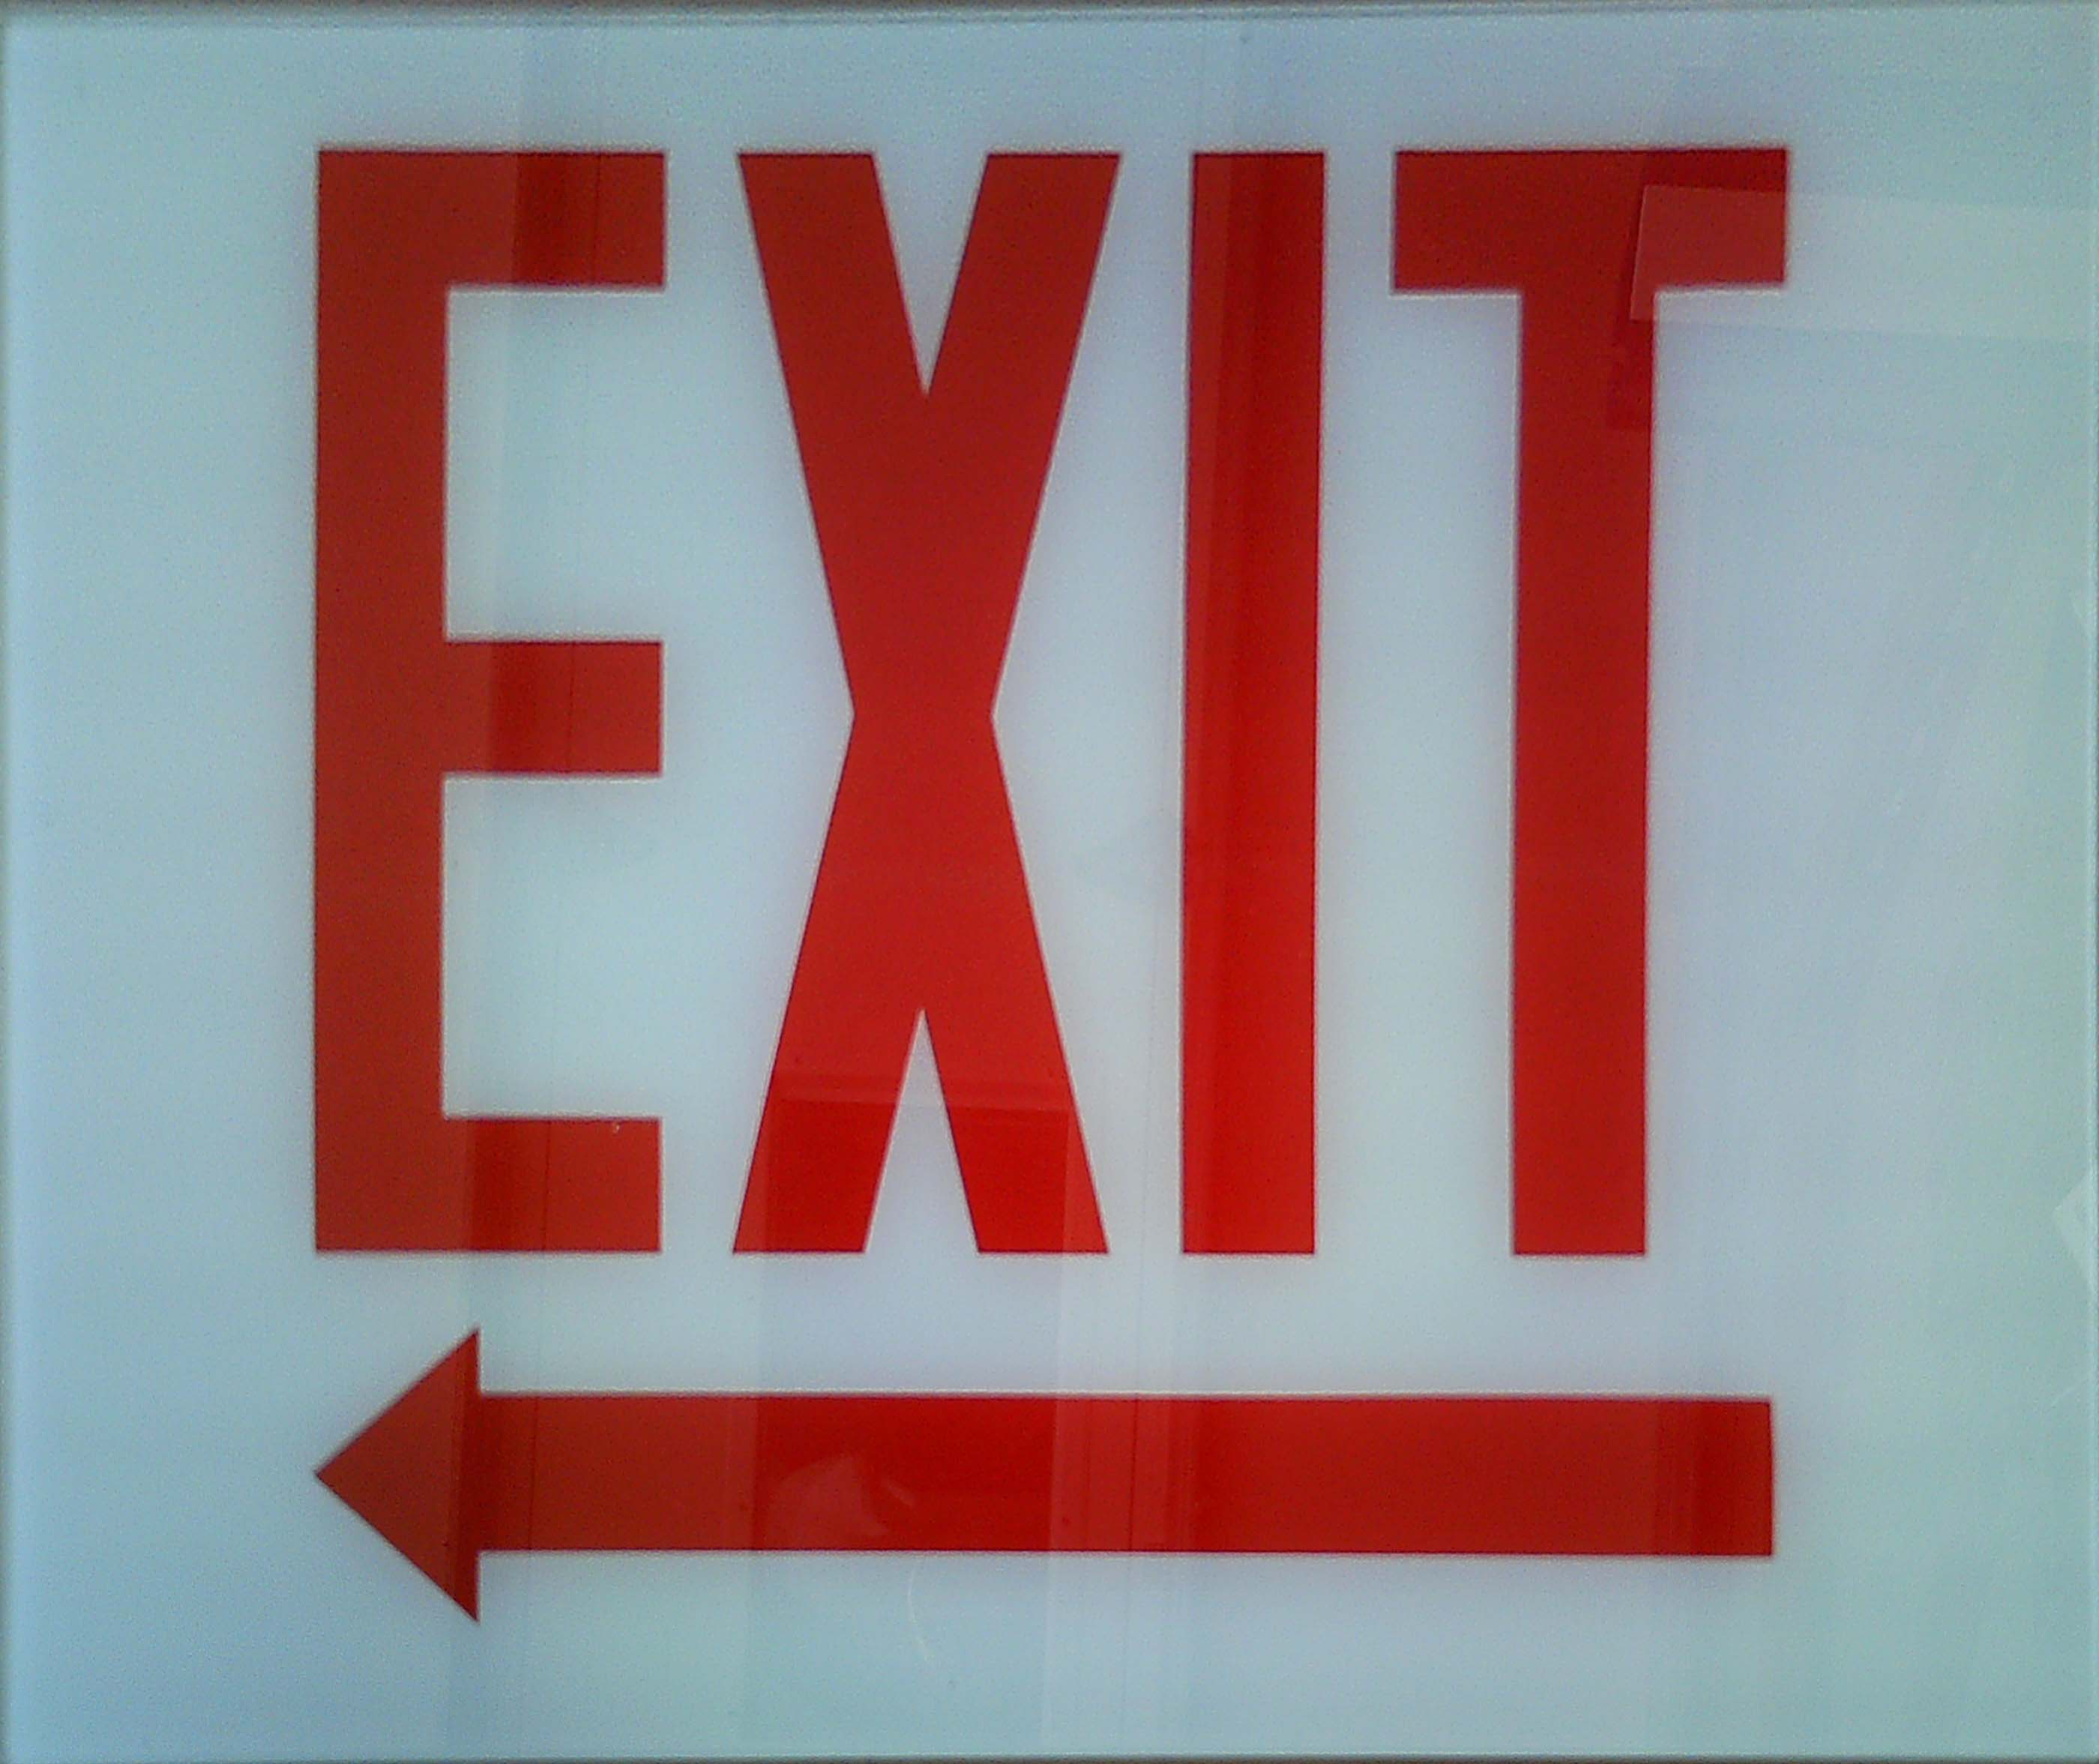 Image logo for Exit Sign - Glass Replacement Sign: EXIT (Left Arrow)